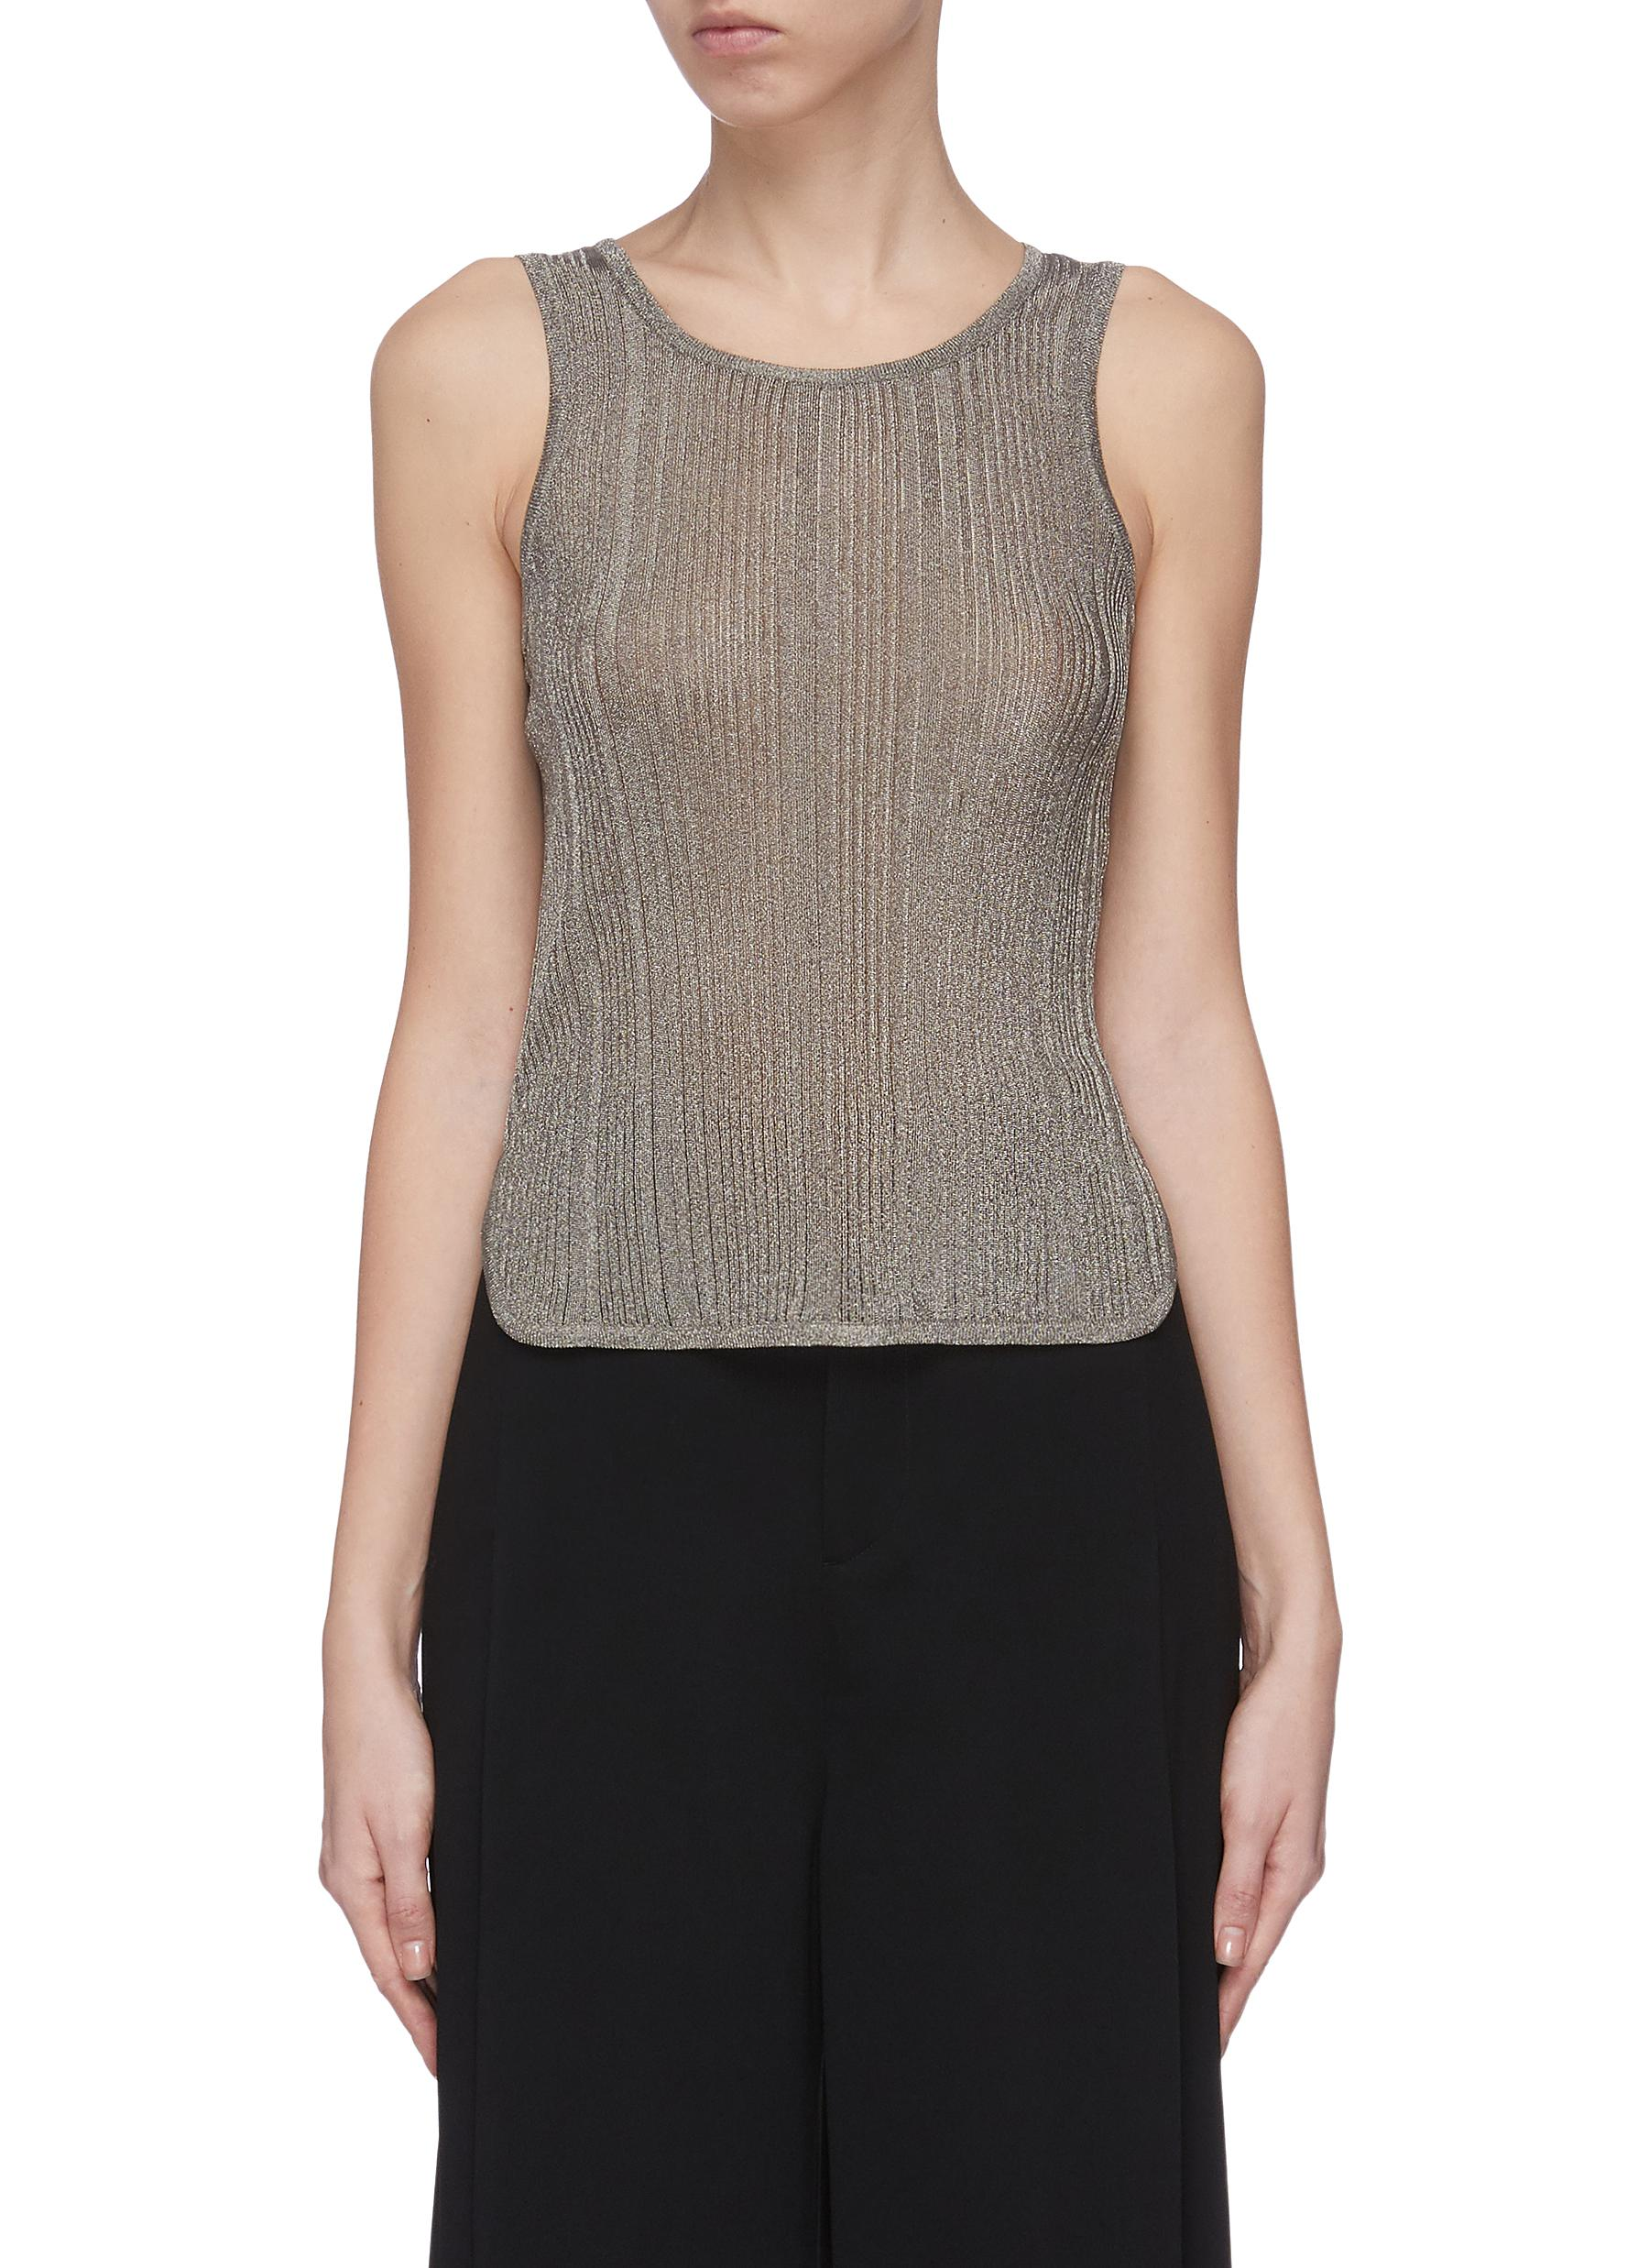 Buy The Row Tops 'Ciela' sheer metallic rip knit tank top